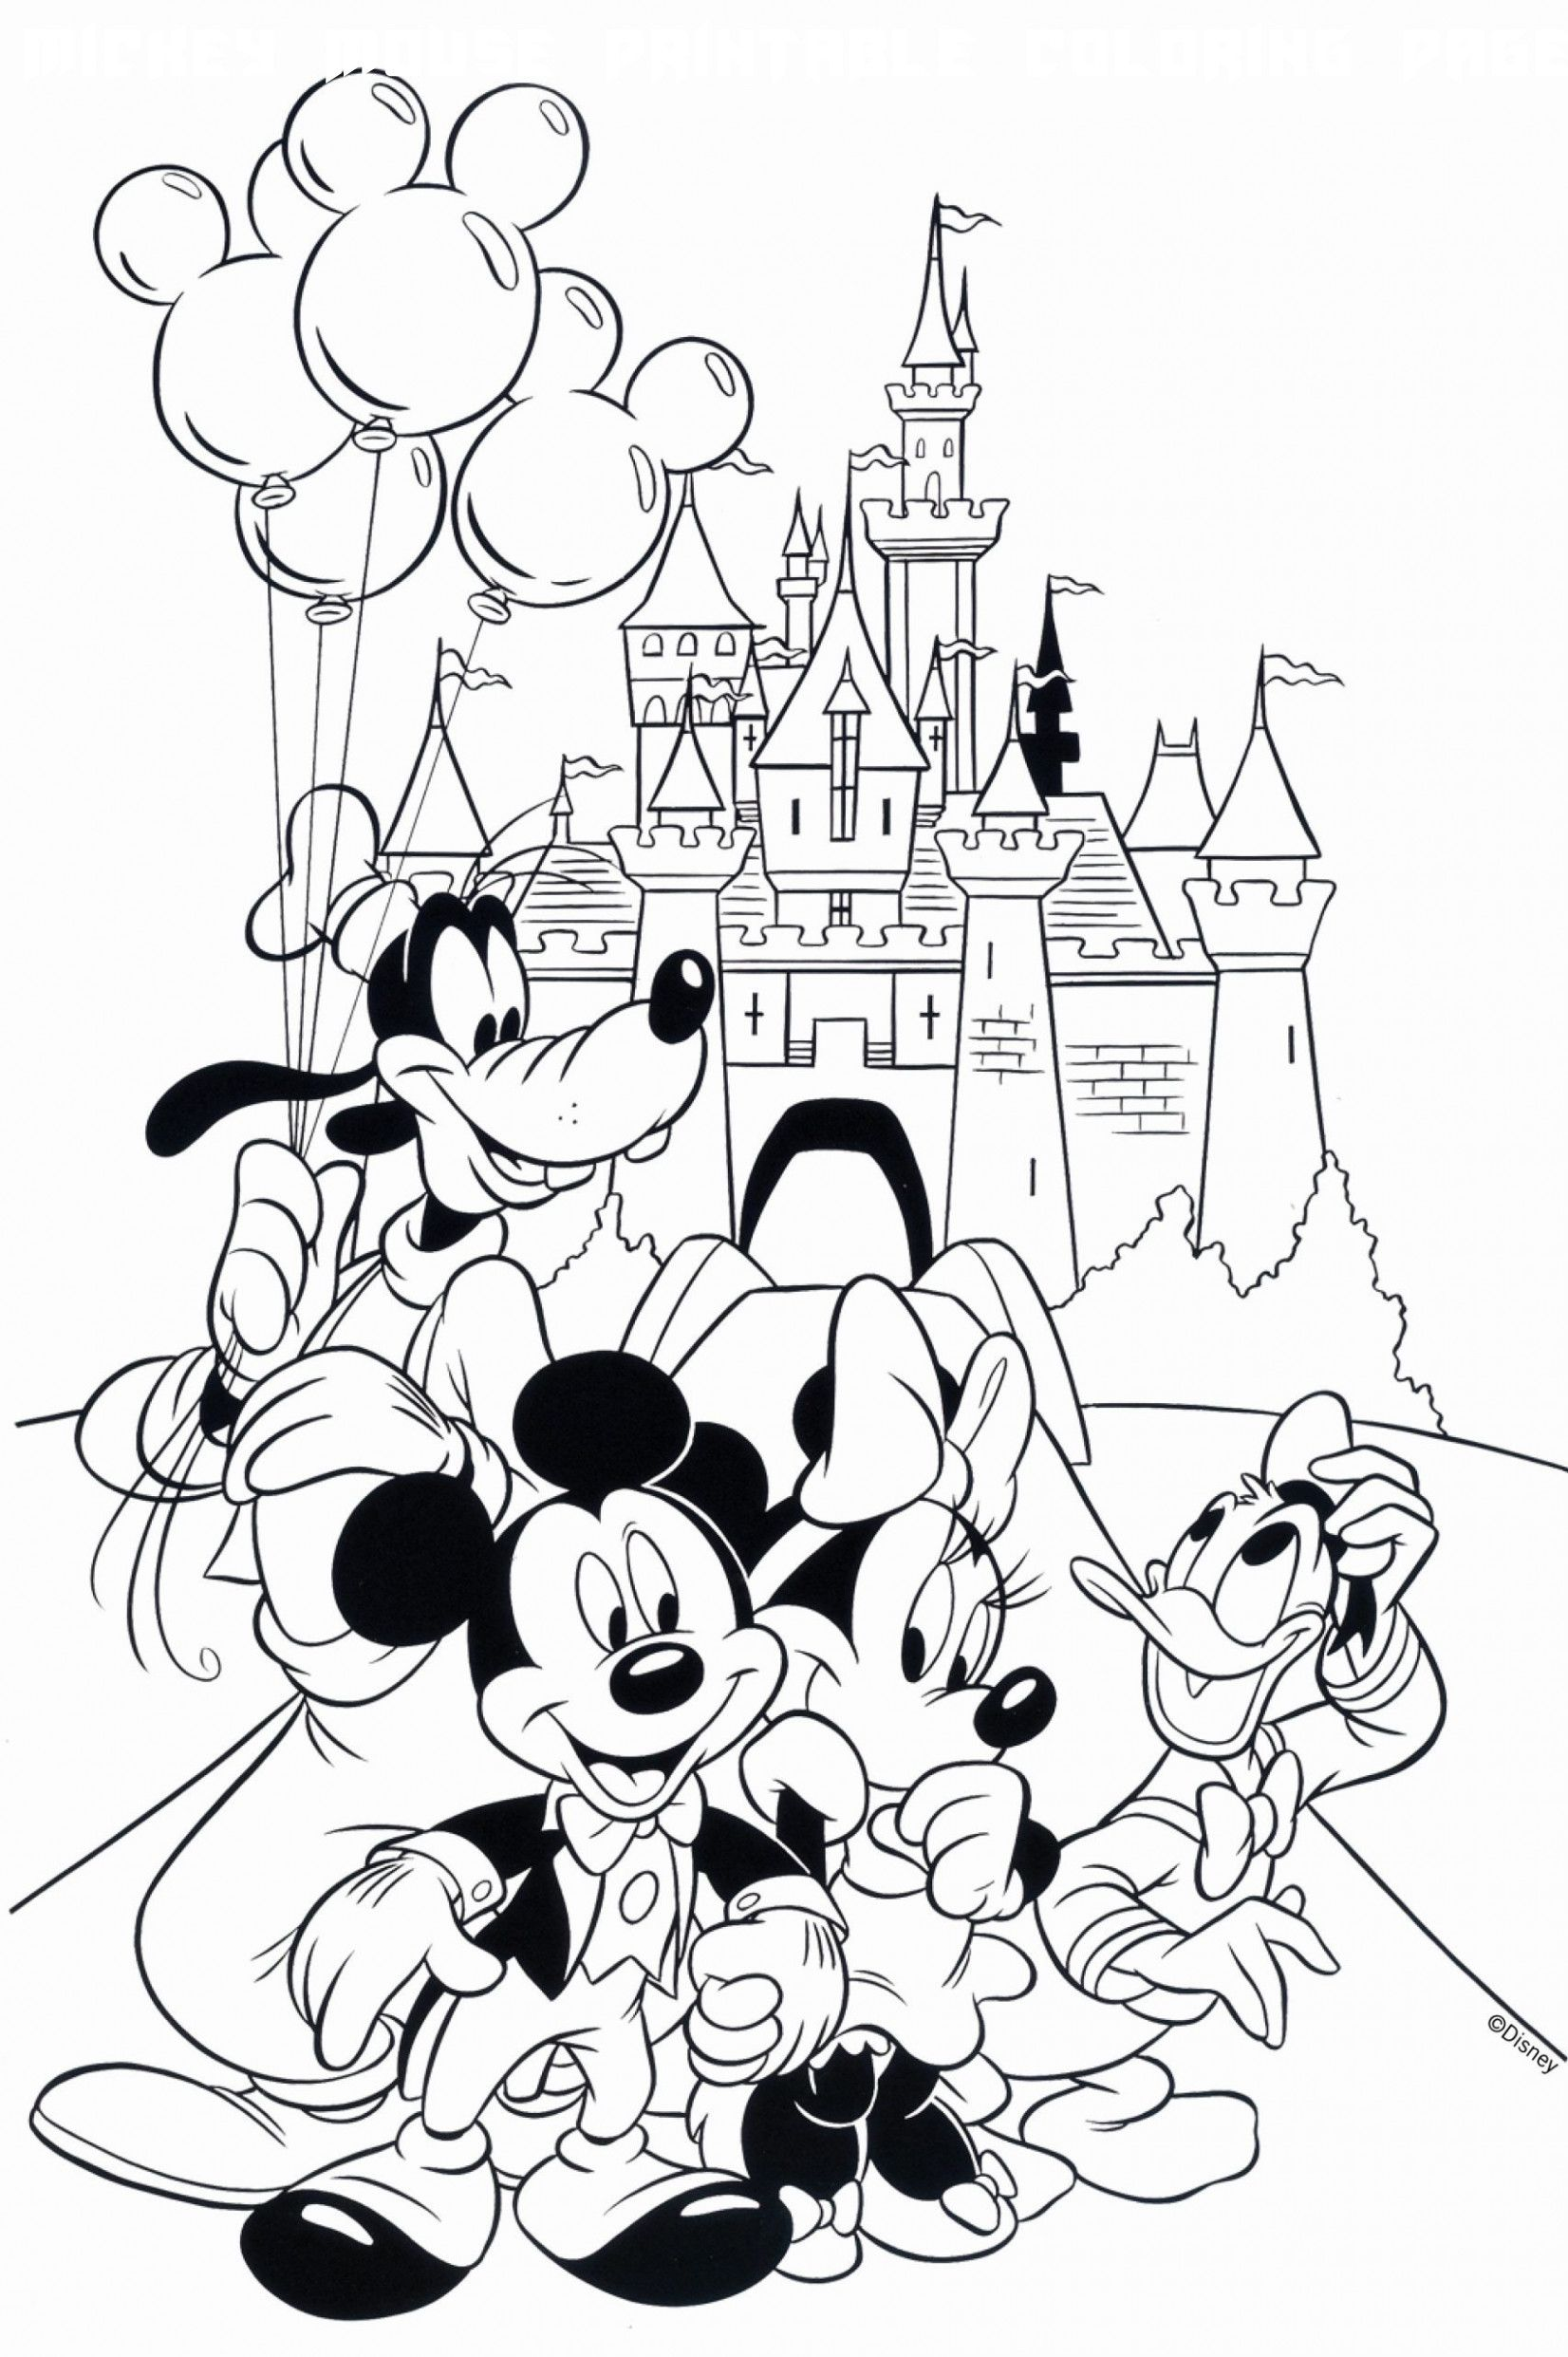 8 Mickey Mouse Printable Coloring Pages Disney Coloring Pages Mickey Coloring Pages Cartoon Coloring Pages